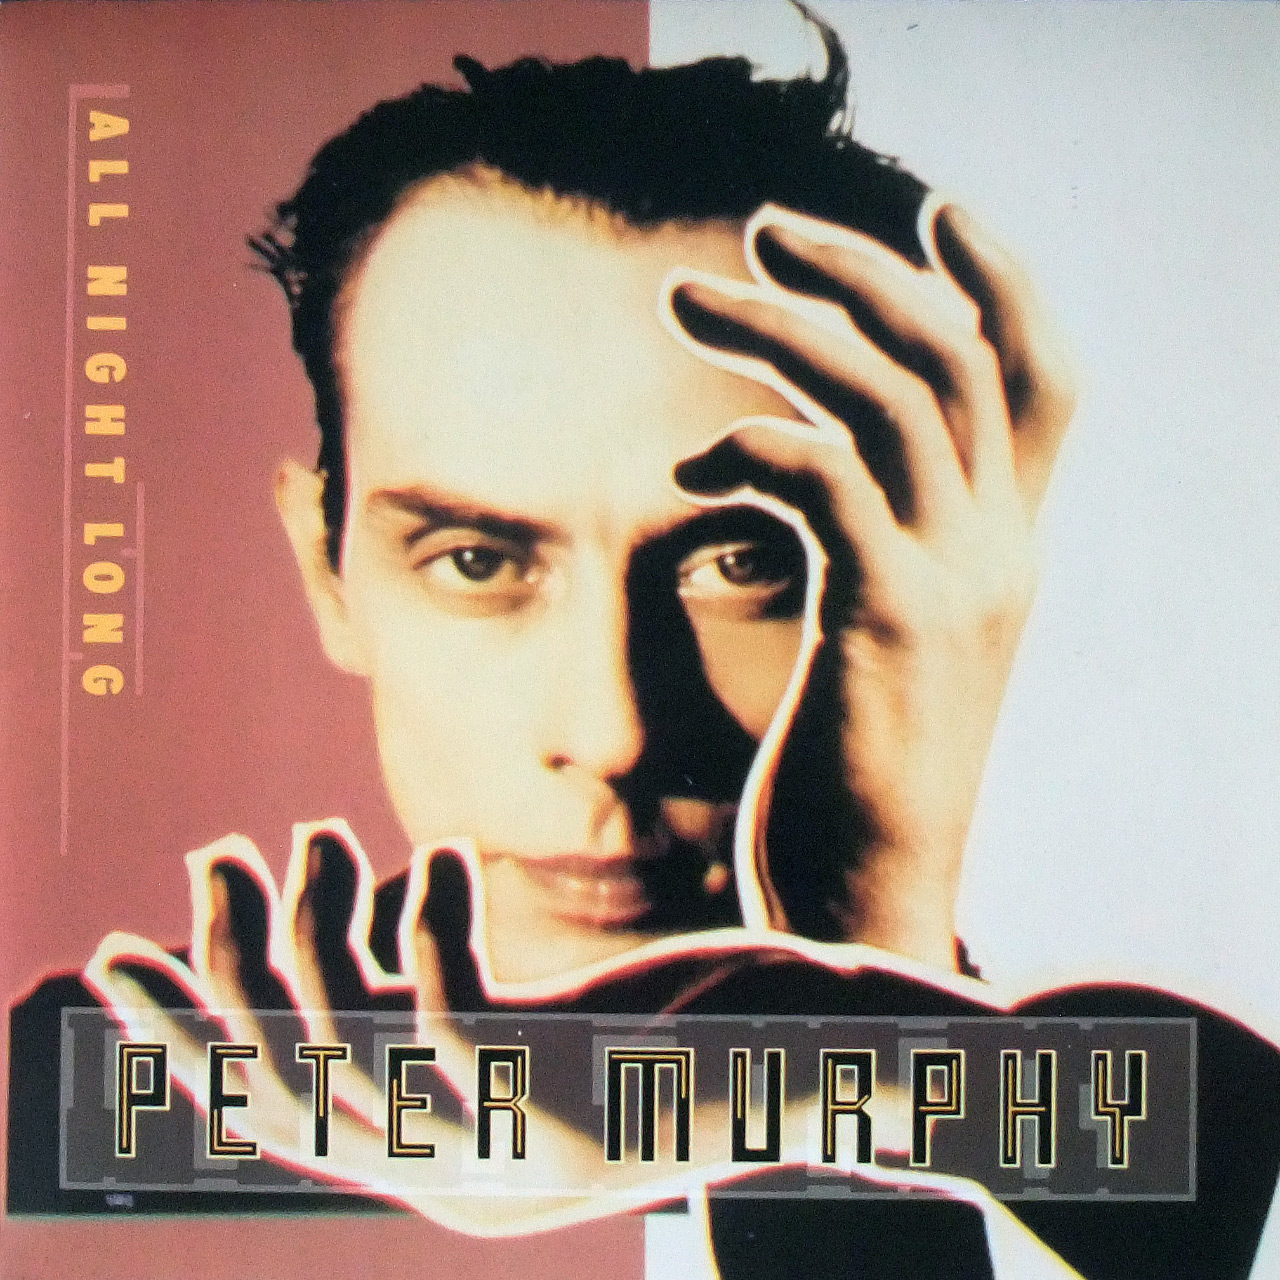 Peter Murphy Expected To Make Full Recovery After Heart Attack Scare